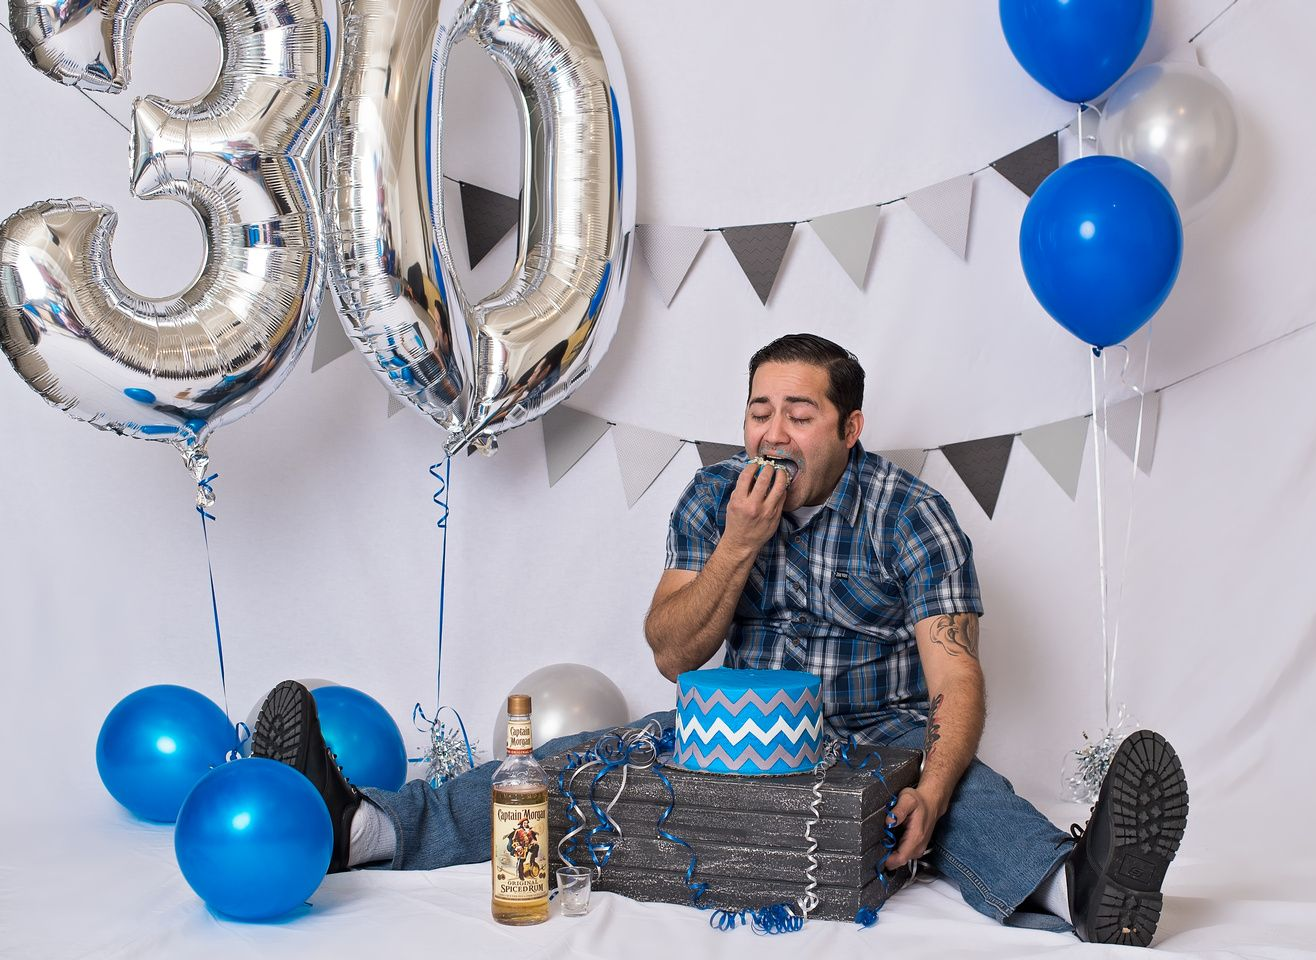 Funny 30 Year Old Male Cake Smash Photography Session With Captain Morgan For His Birthday What A Fun Photoshoot